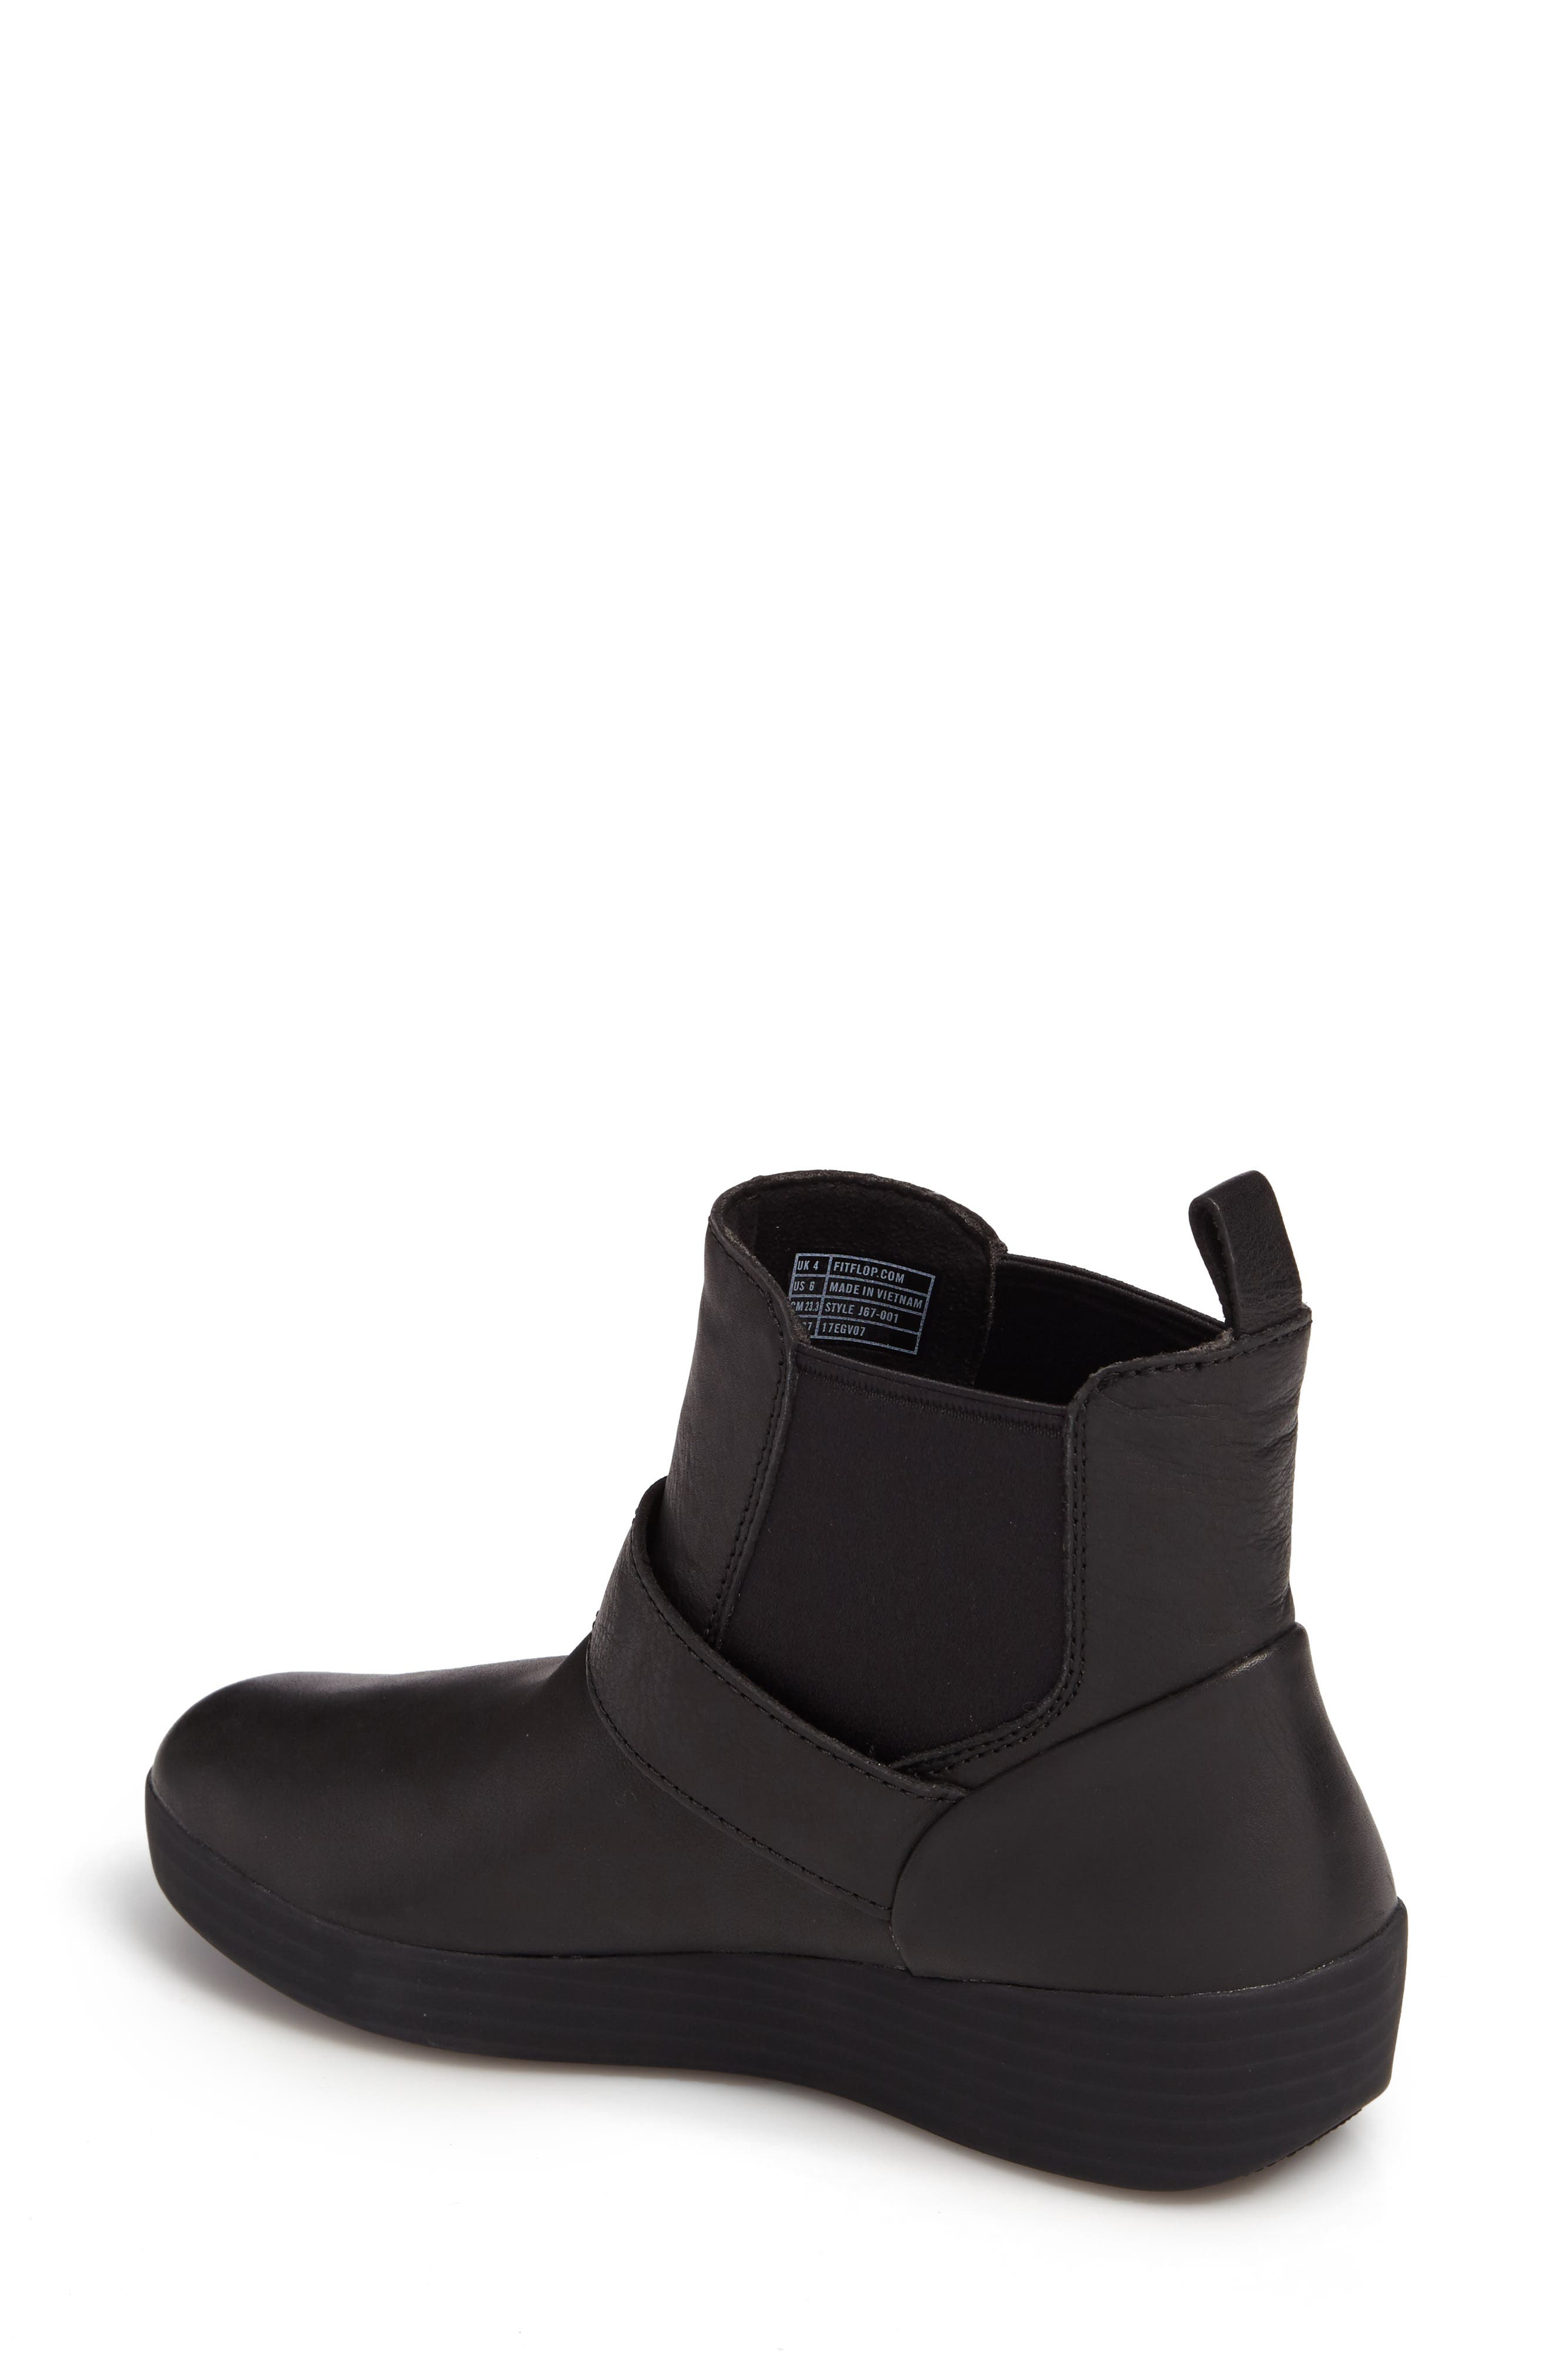 Alternate Image 2  - FitFlop Superbuckle Chelsea Boot (Women)